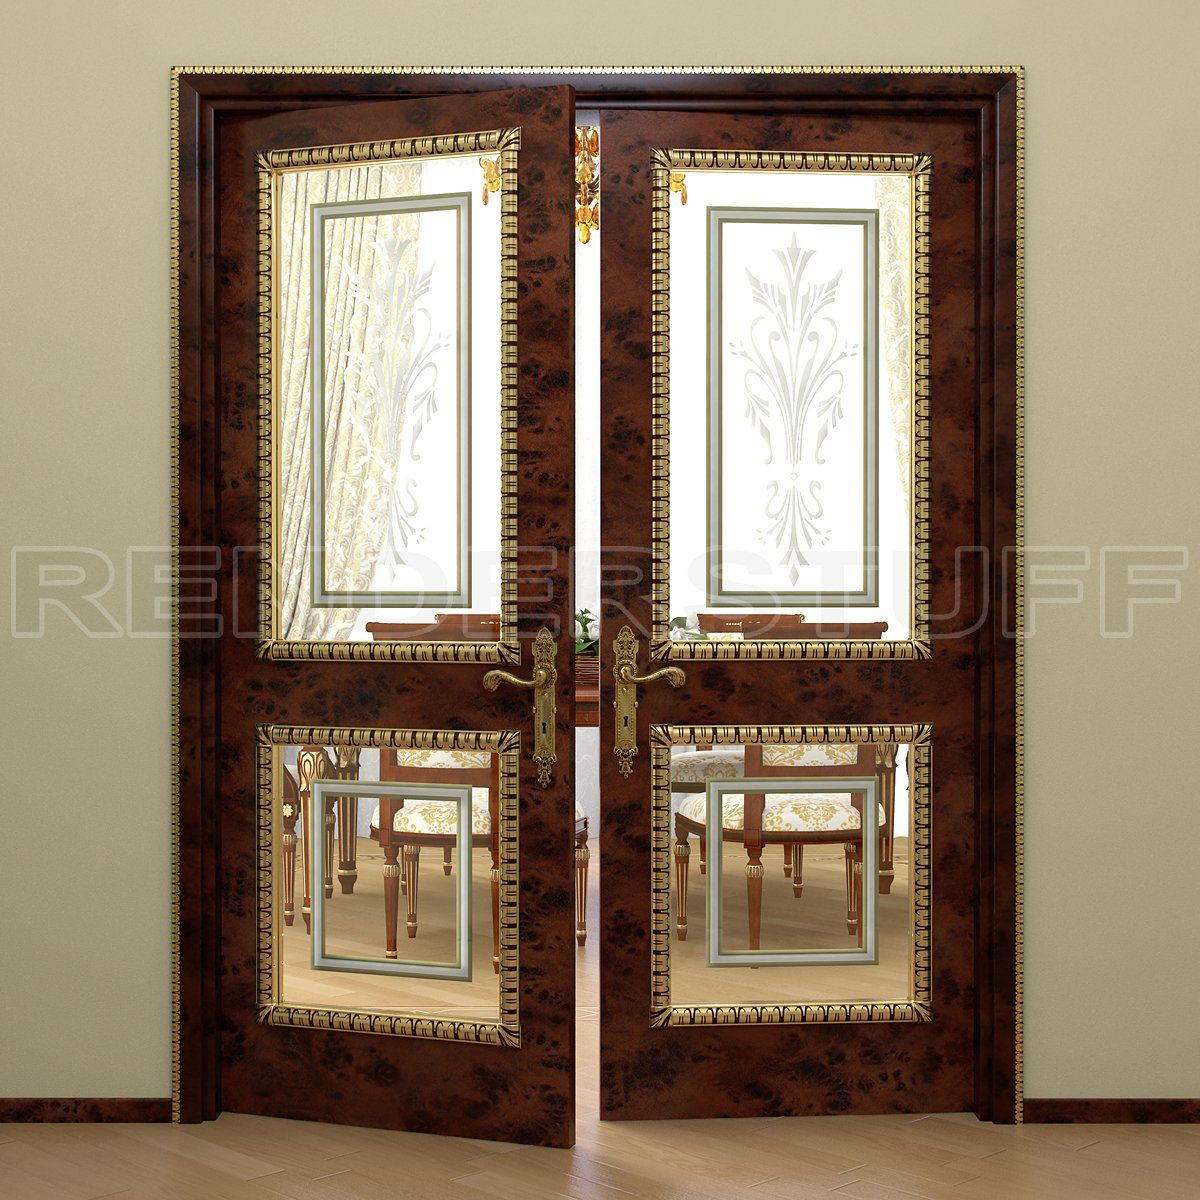 Free Rich Interior Door With Glass Inserts 3d Model Rendering Image